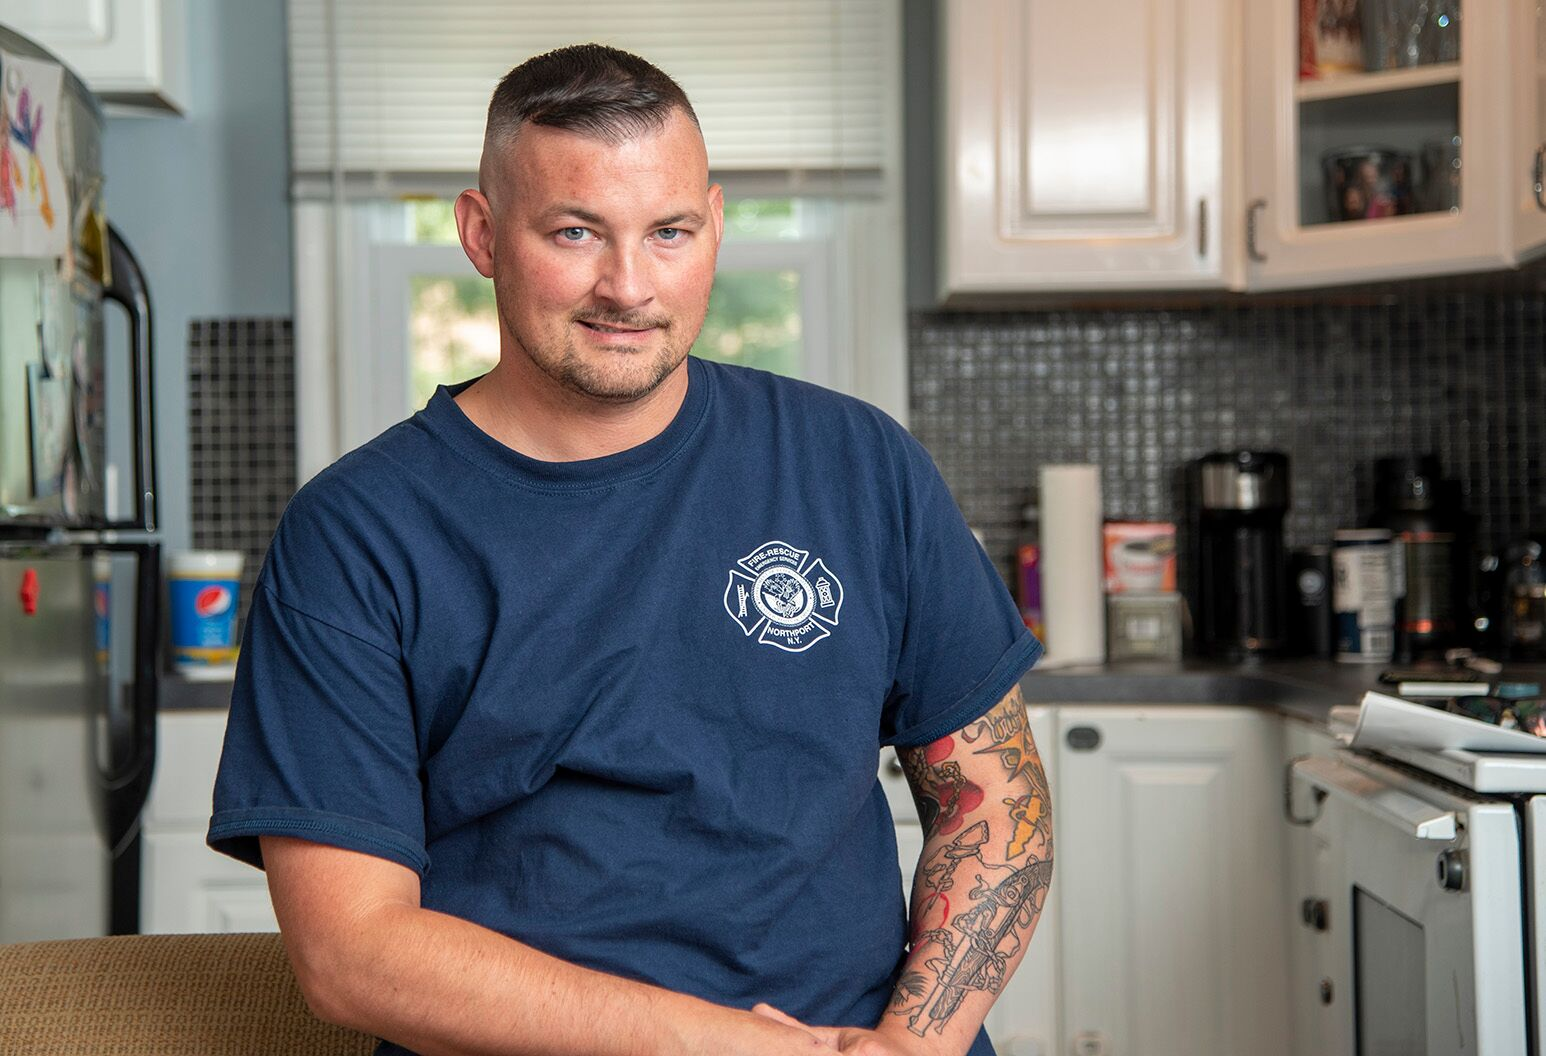 A man with tattoos wearing a navy t-shirt with a firefighter logo smiles in his kitchen.